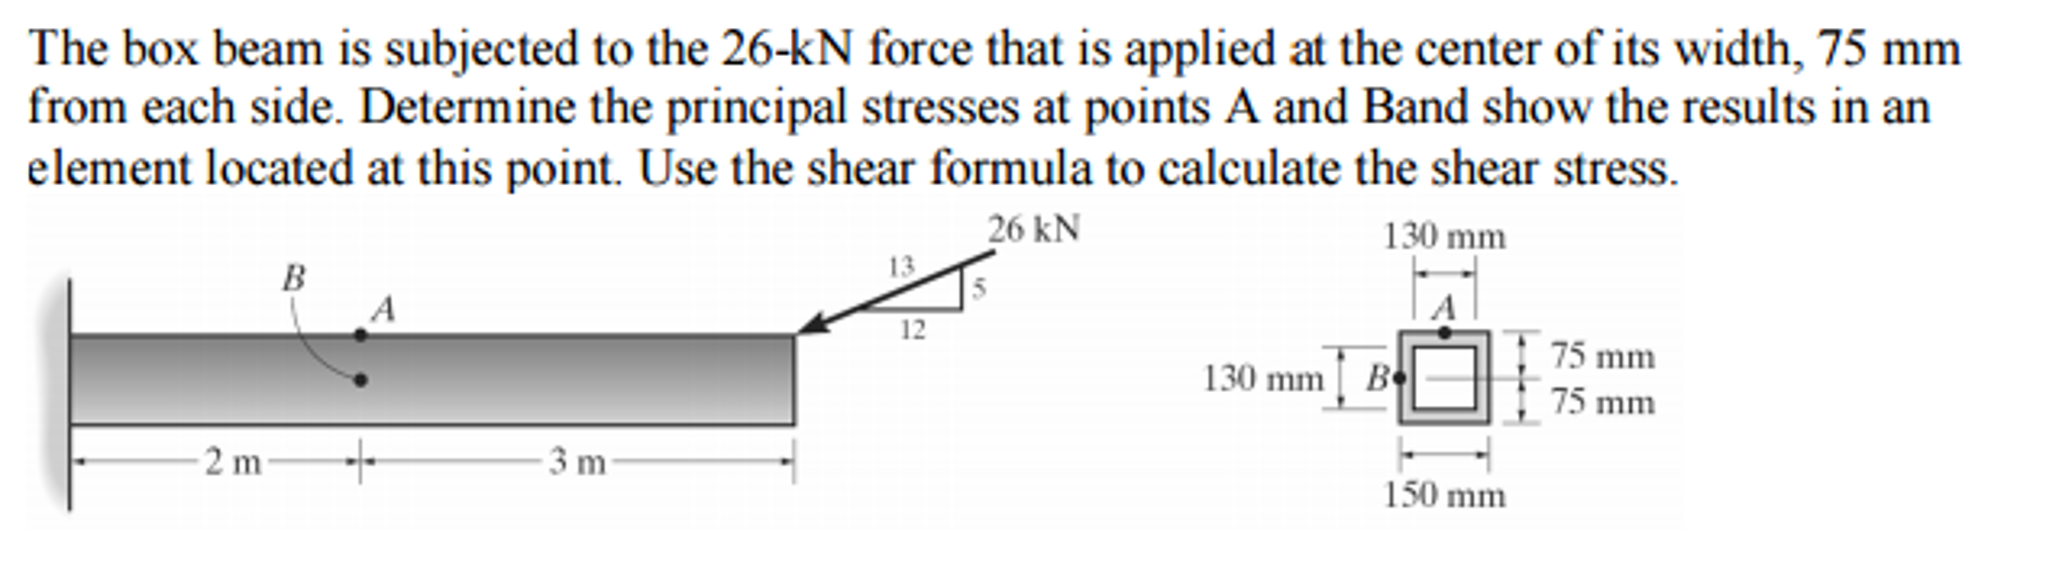 Solved The Box Beam Is Subjected To 26 Kn Force That Diagram And Formulas